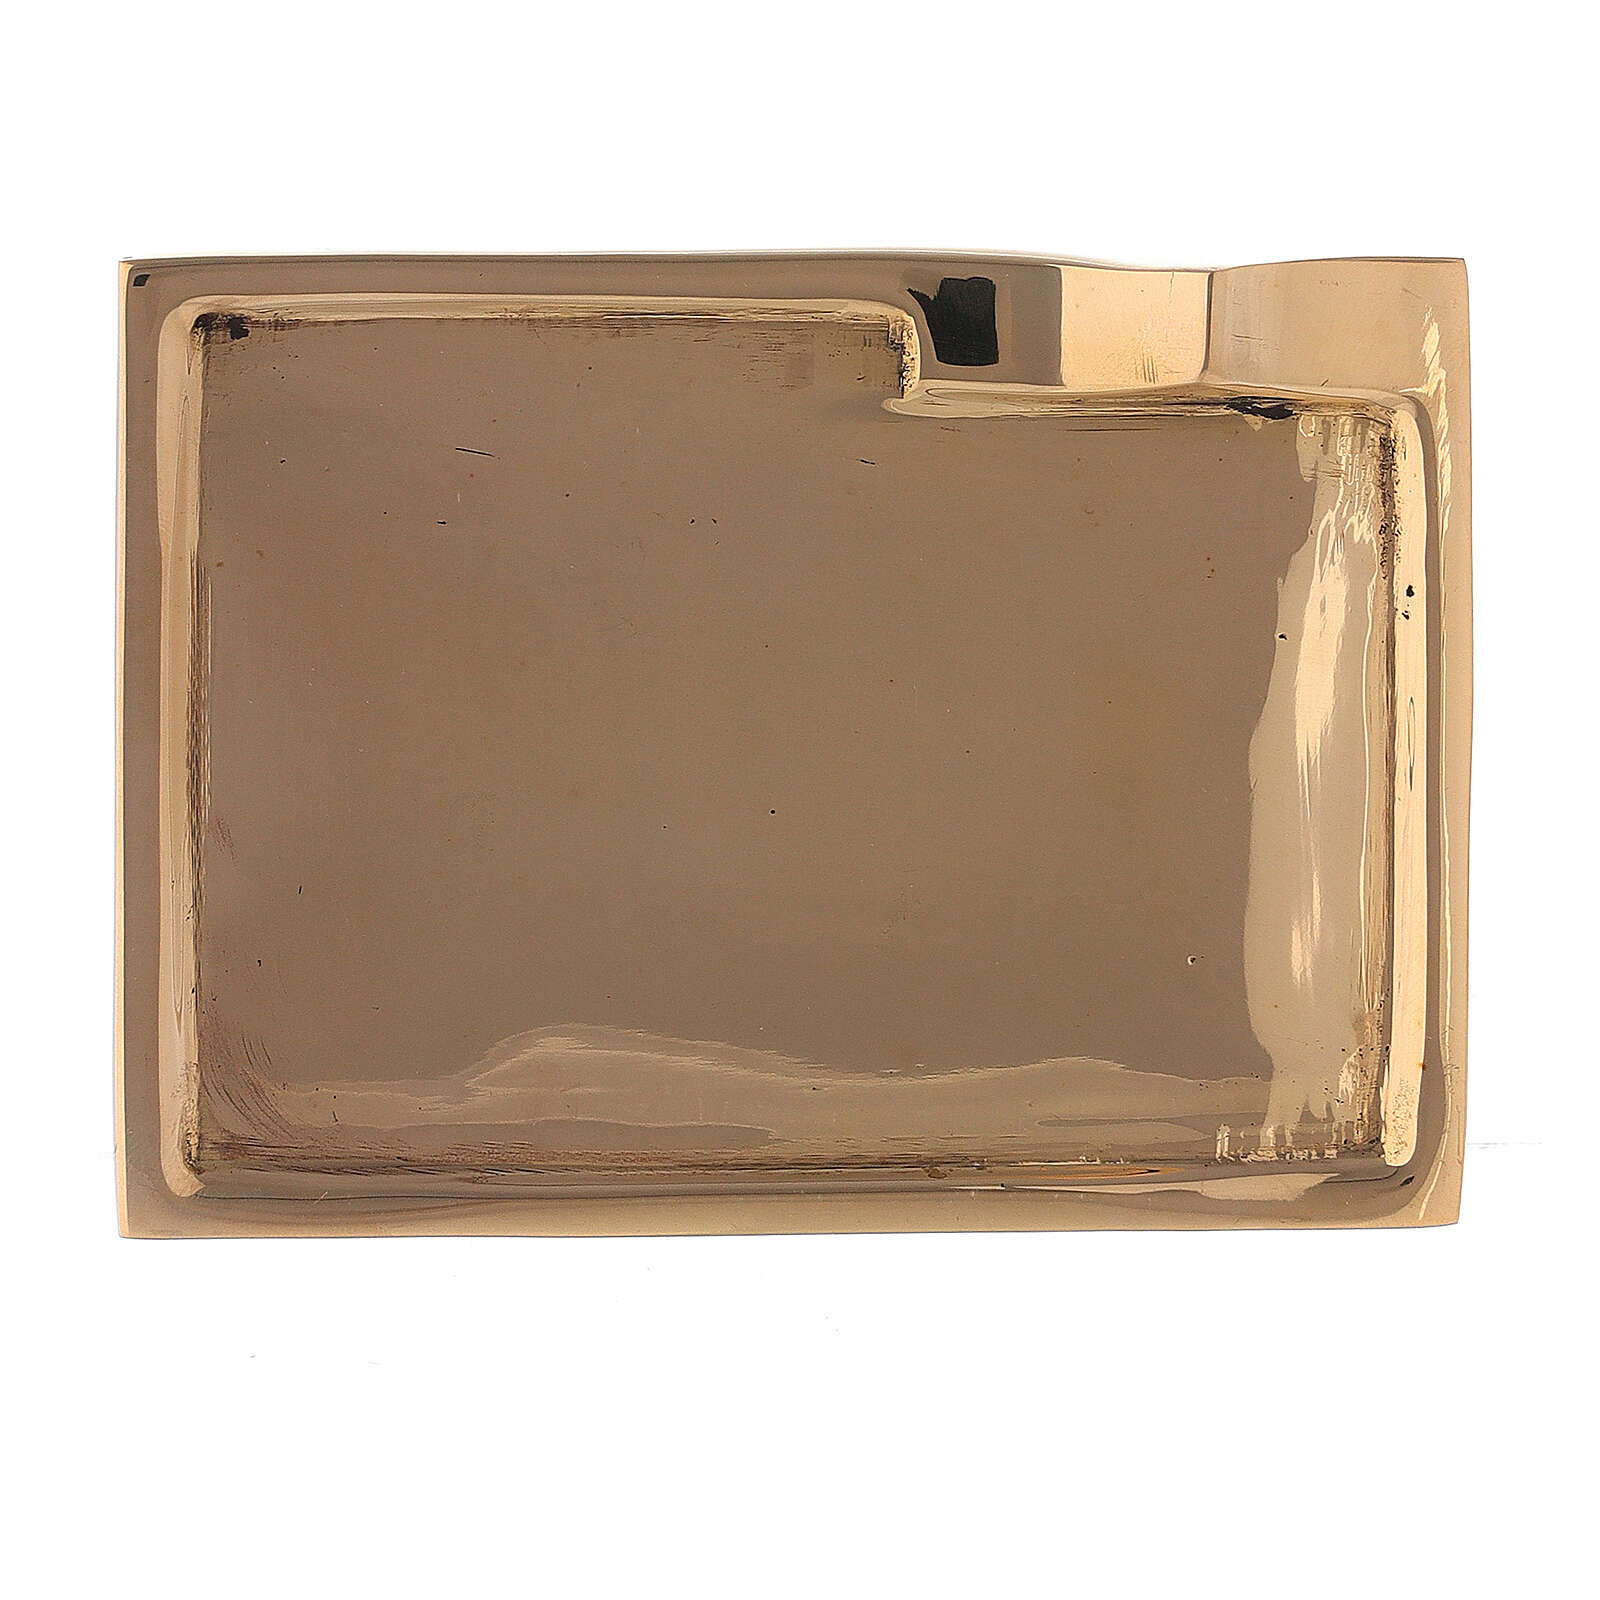 Rectangular candle holder plate in polished brass 3 1/2x2 1/2 in 3